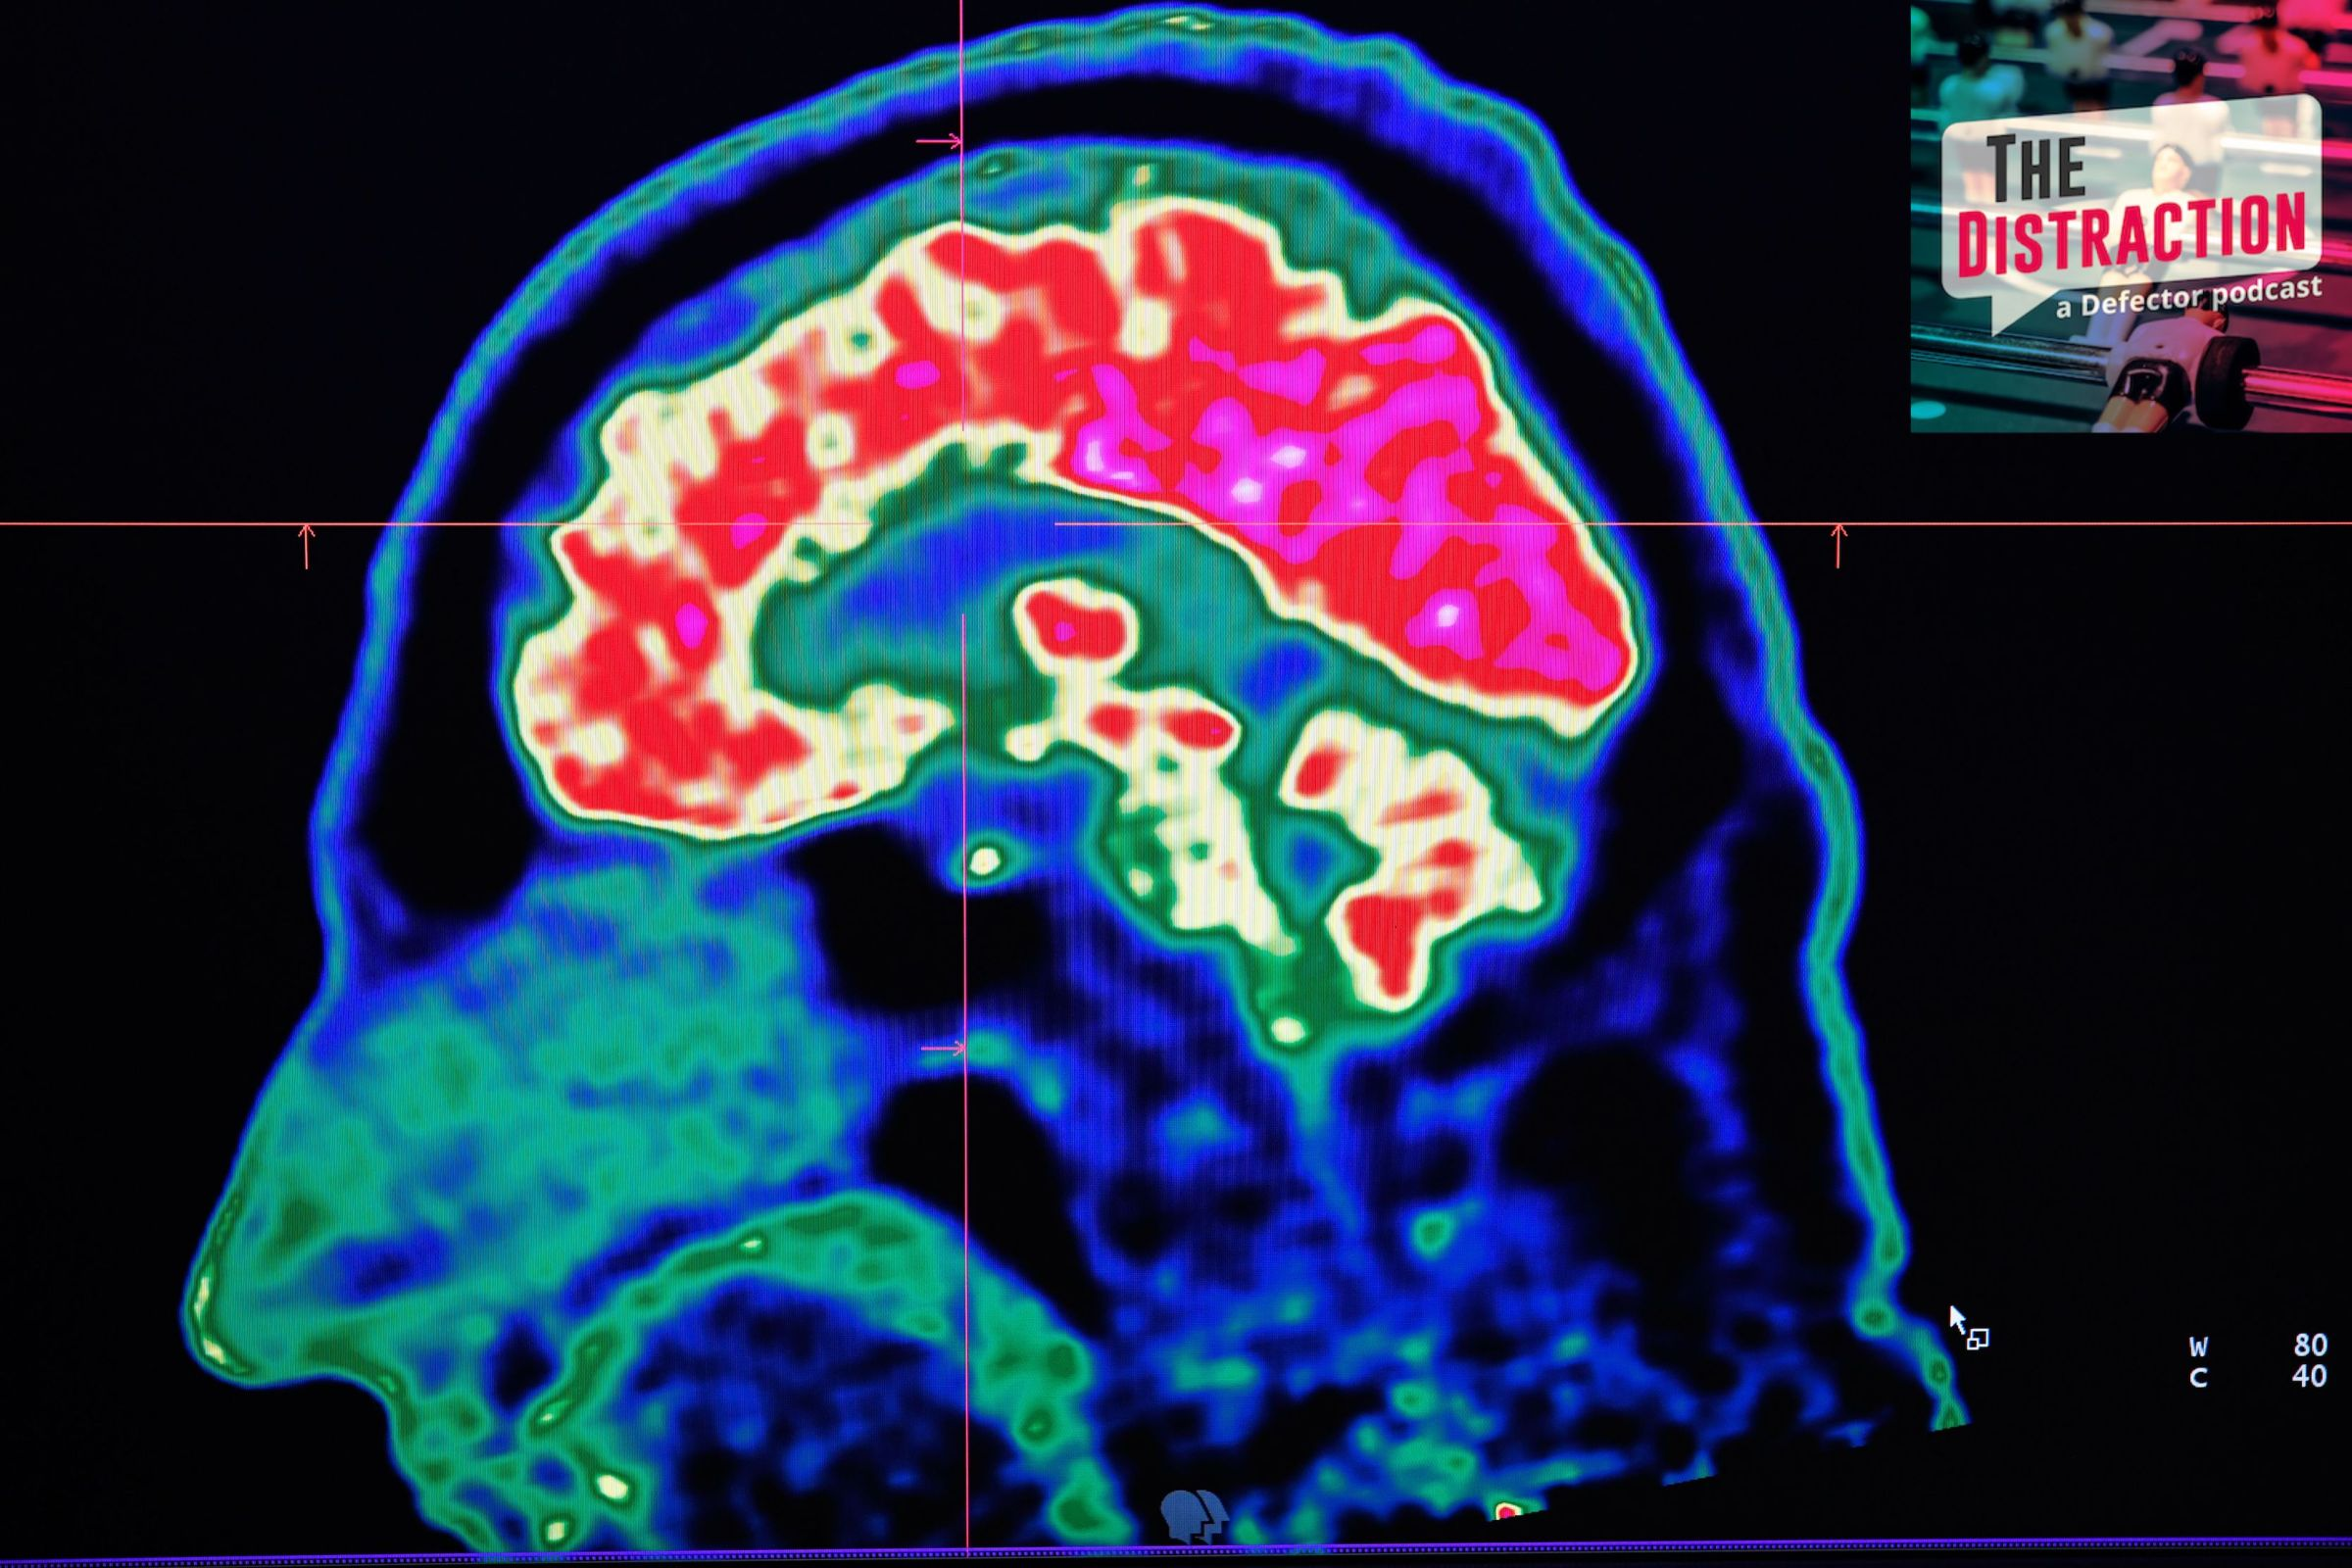 A picture of a human brain taken by a positron emission tomography scanner.